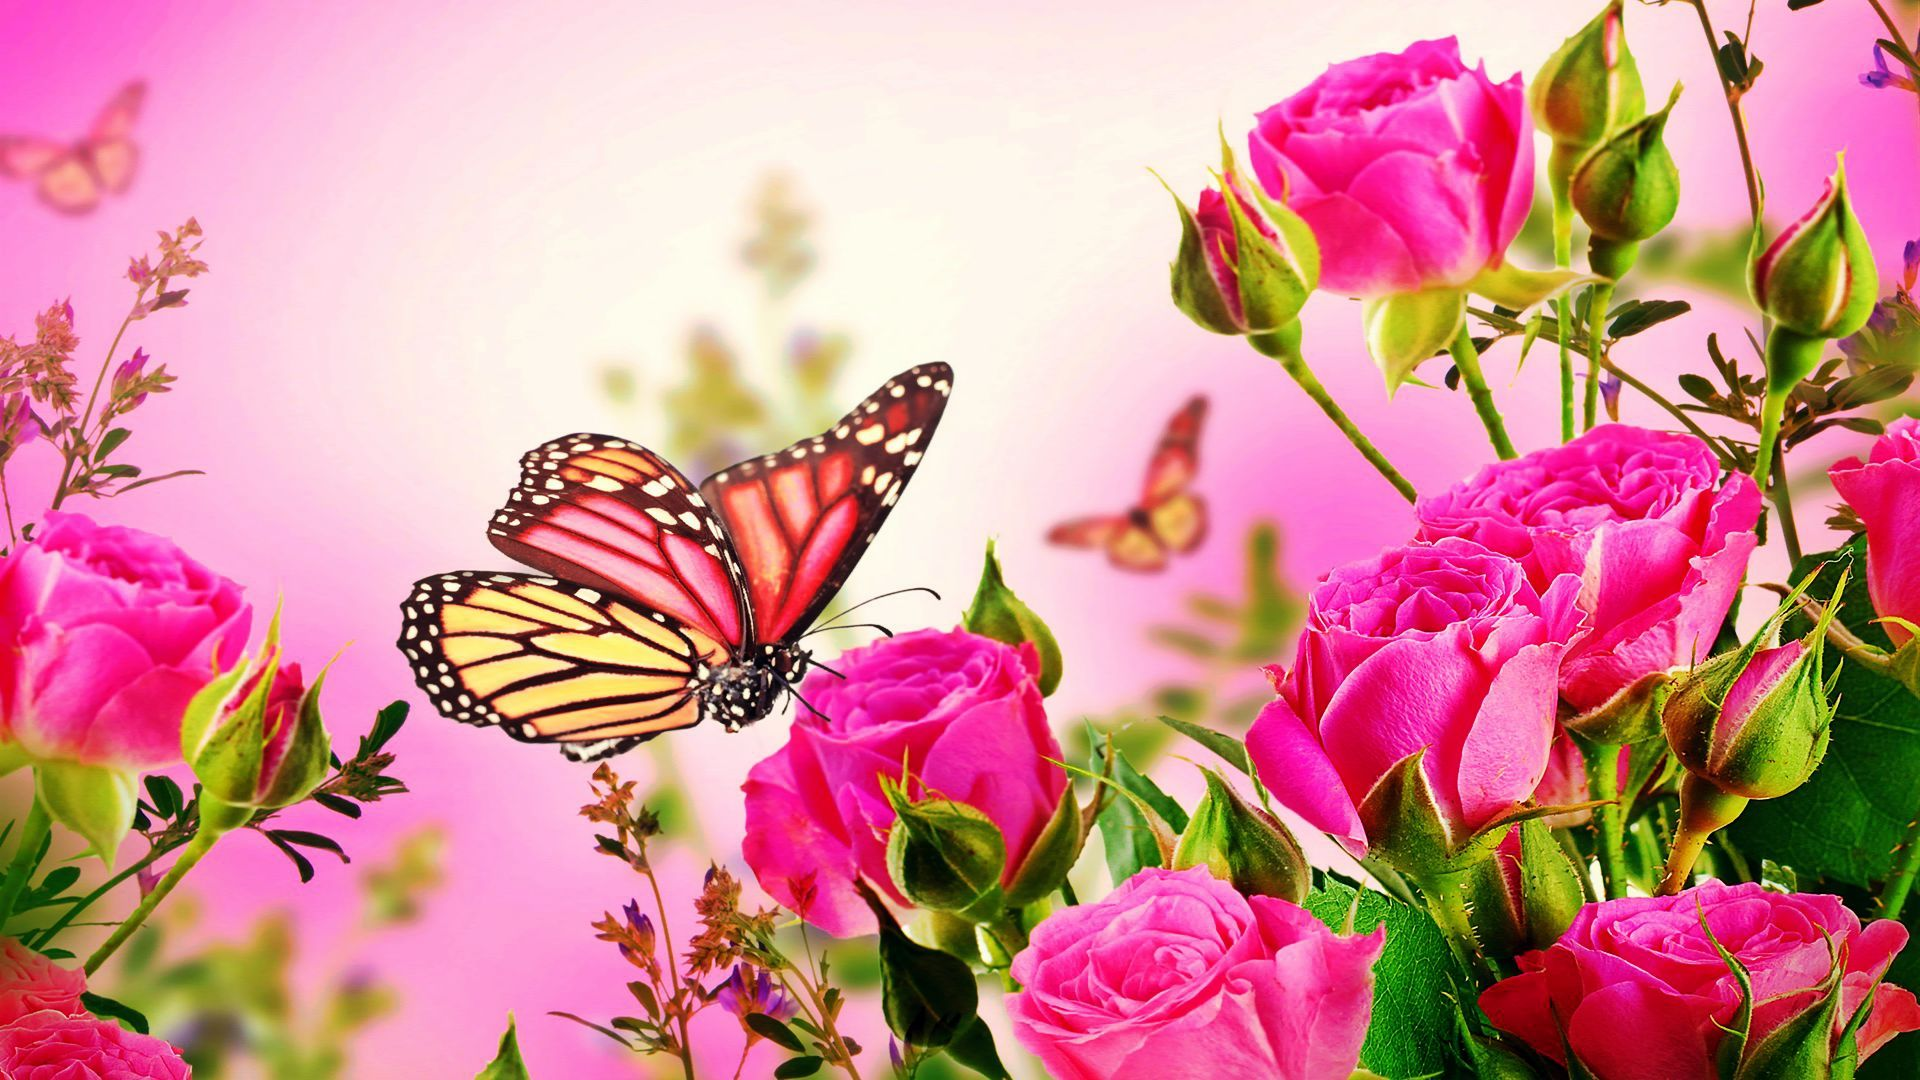 Pink Rose Butterfly Wallpaper Of Pink Roses Flowers